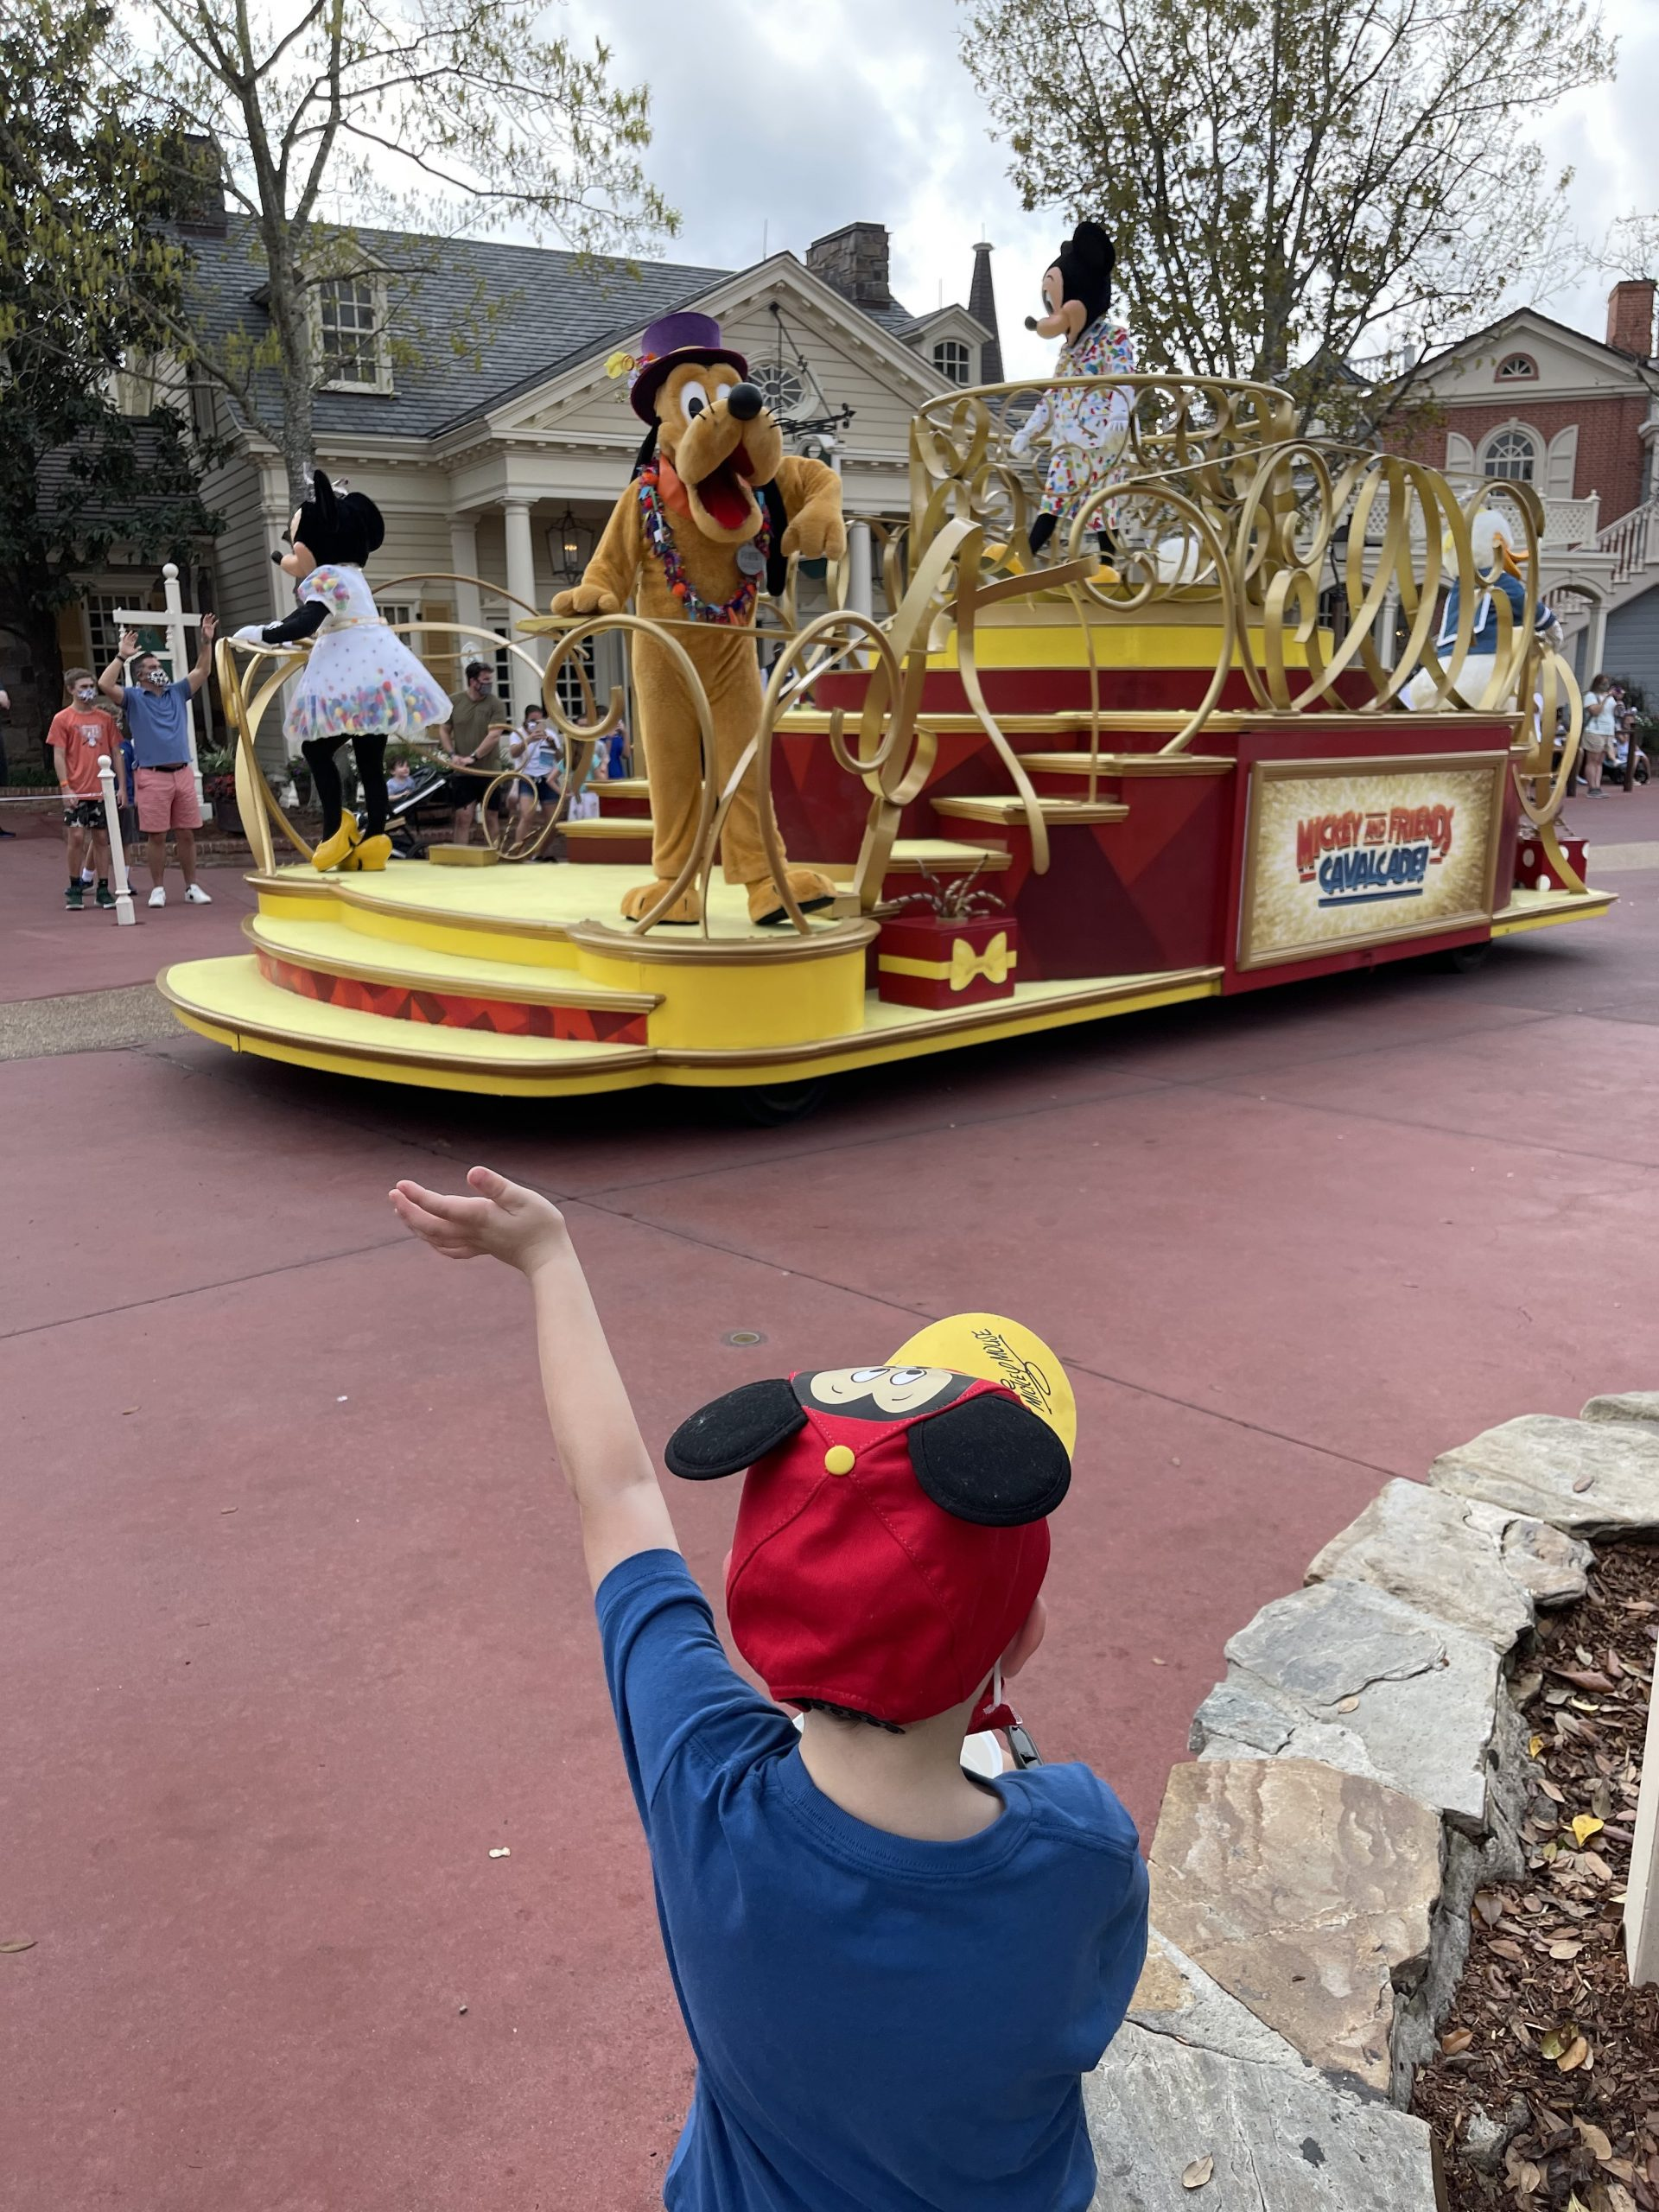 Tommy's son waves to Pluto during parade.